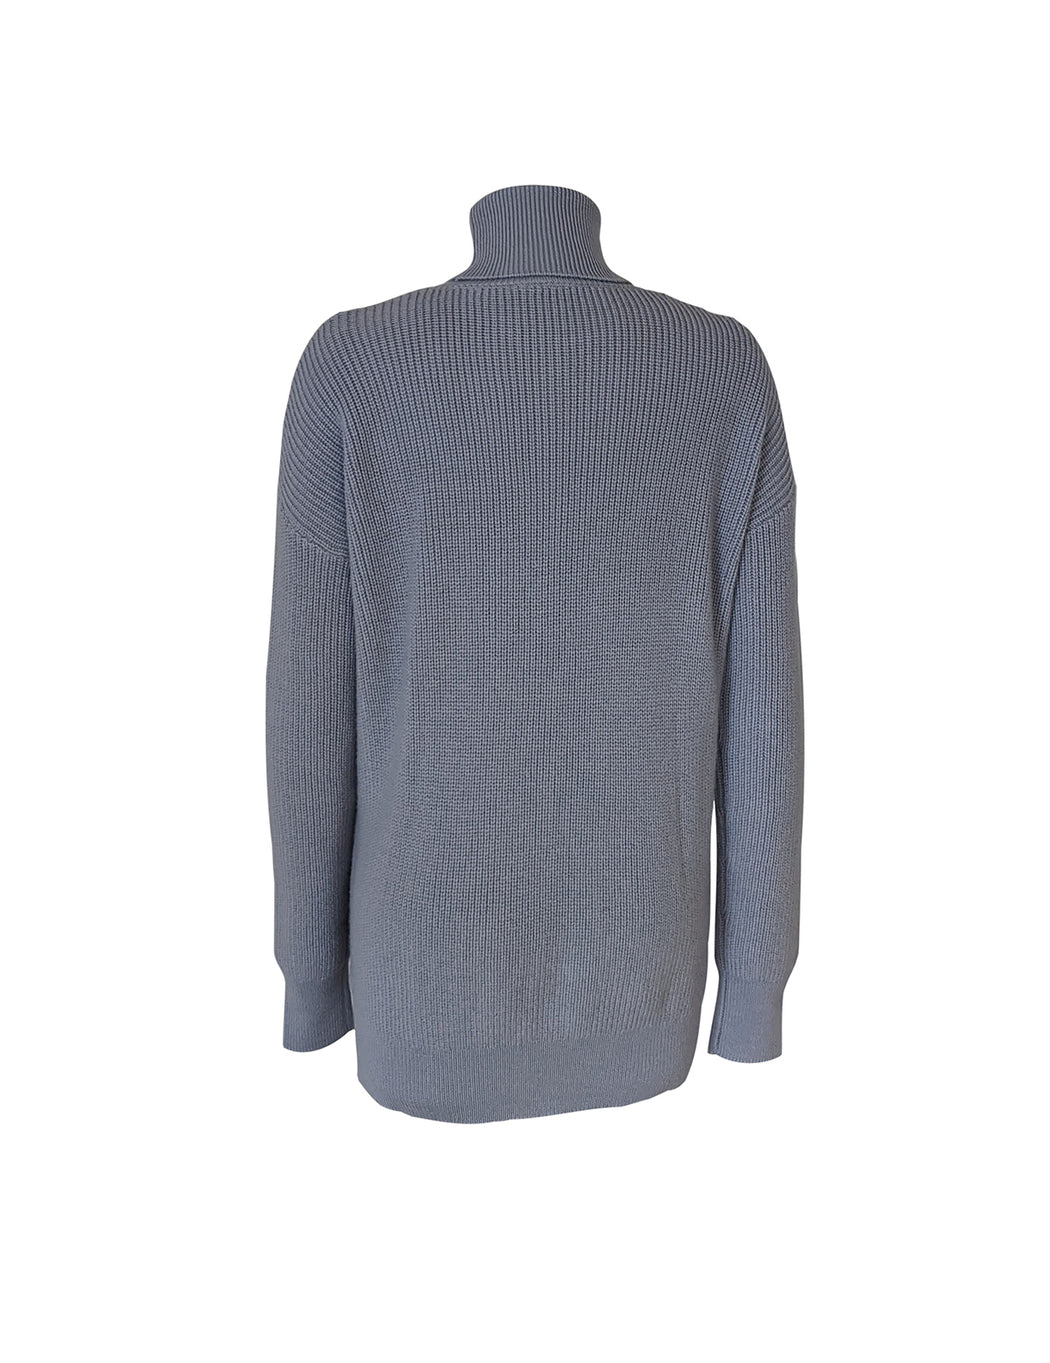 OVERSIZED MERINO WOOL SWEATER